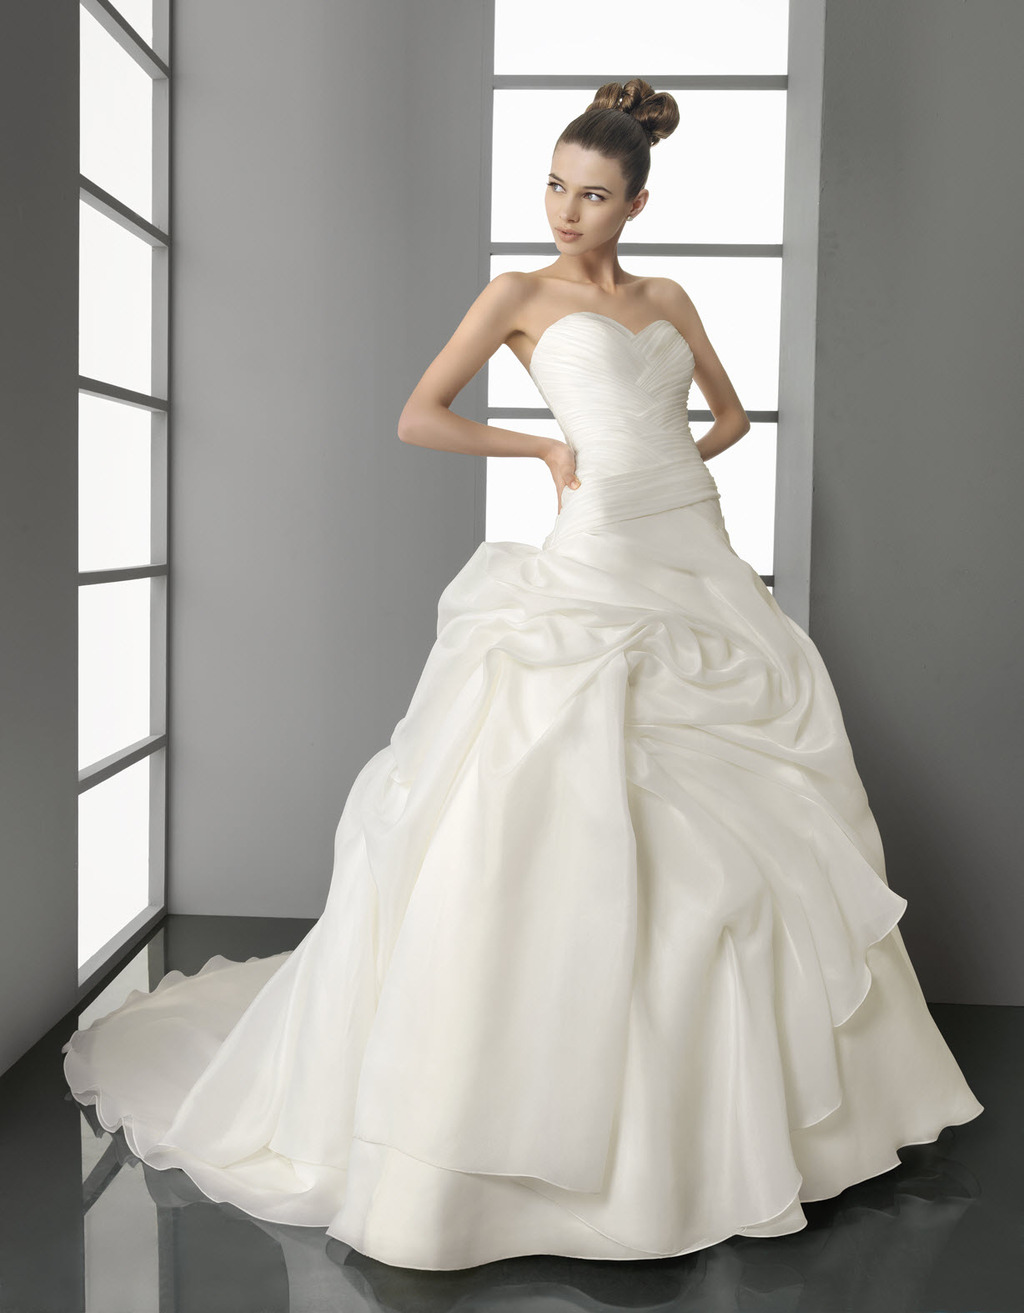 Piamonte-spring-2012-wedding-dress-aire-barcelona-bridal-gown.full